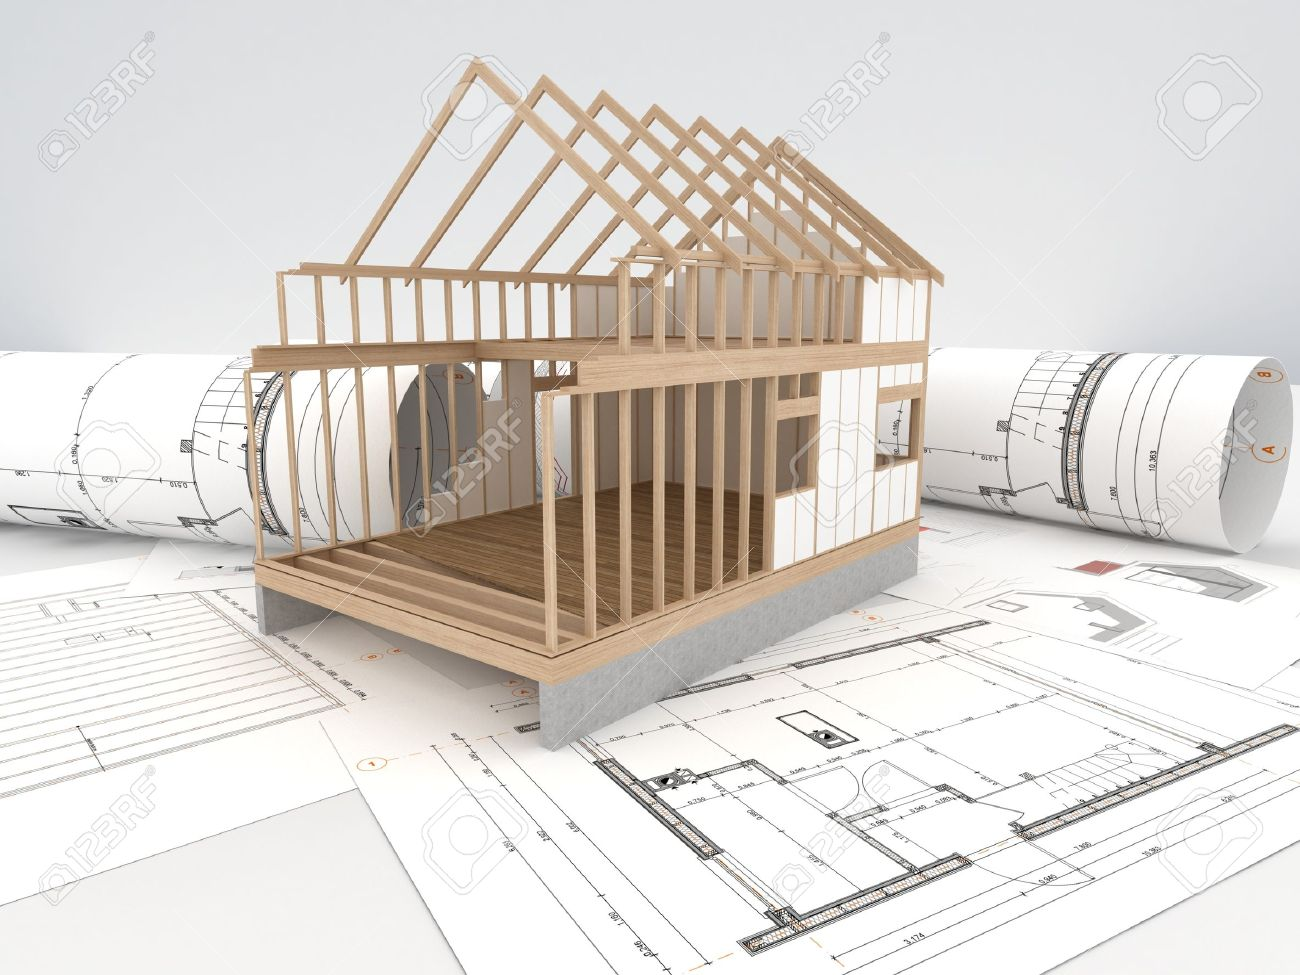 Design And Construction Of Wooden House - Architects Technical ...